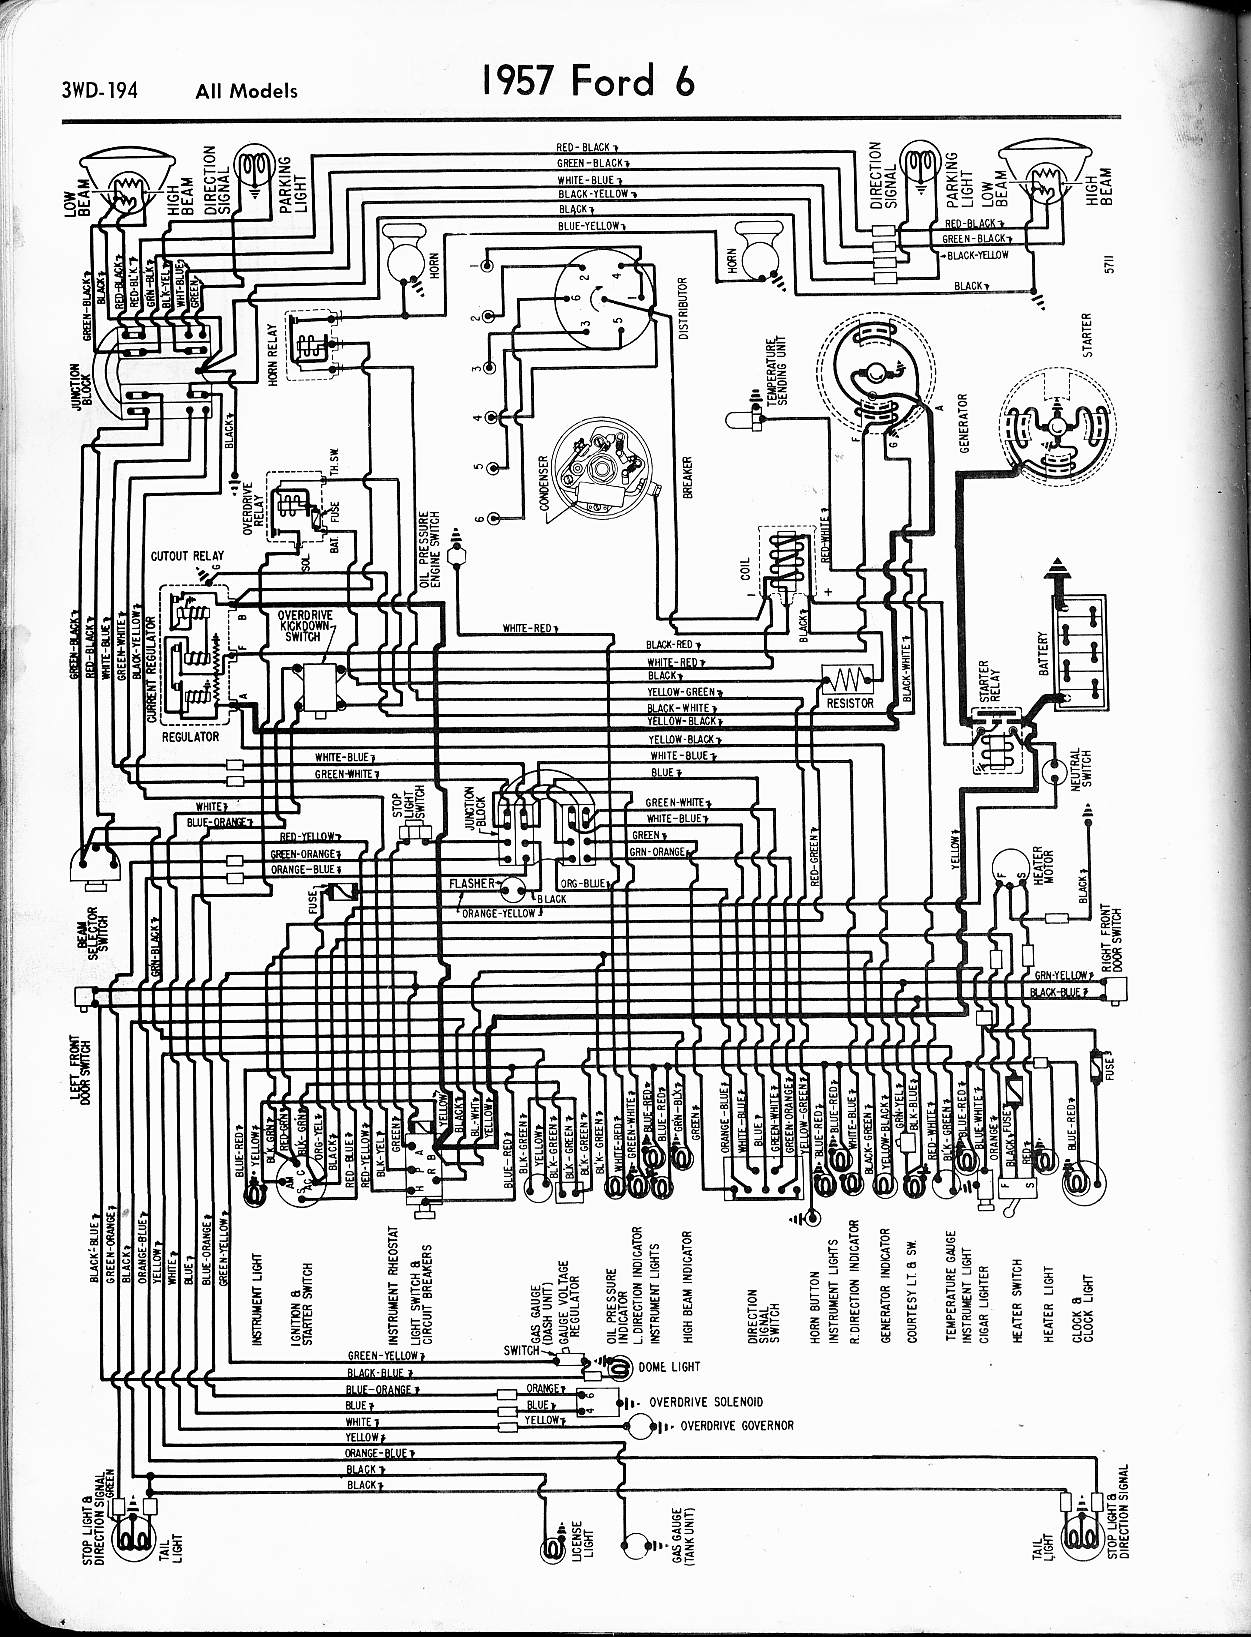 MWire5765 194 57 65 ford wiring diagrams 1957 ford wiring diagram at mr168.co